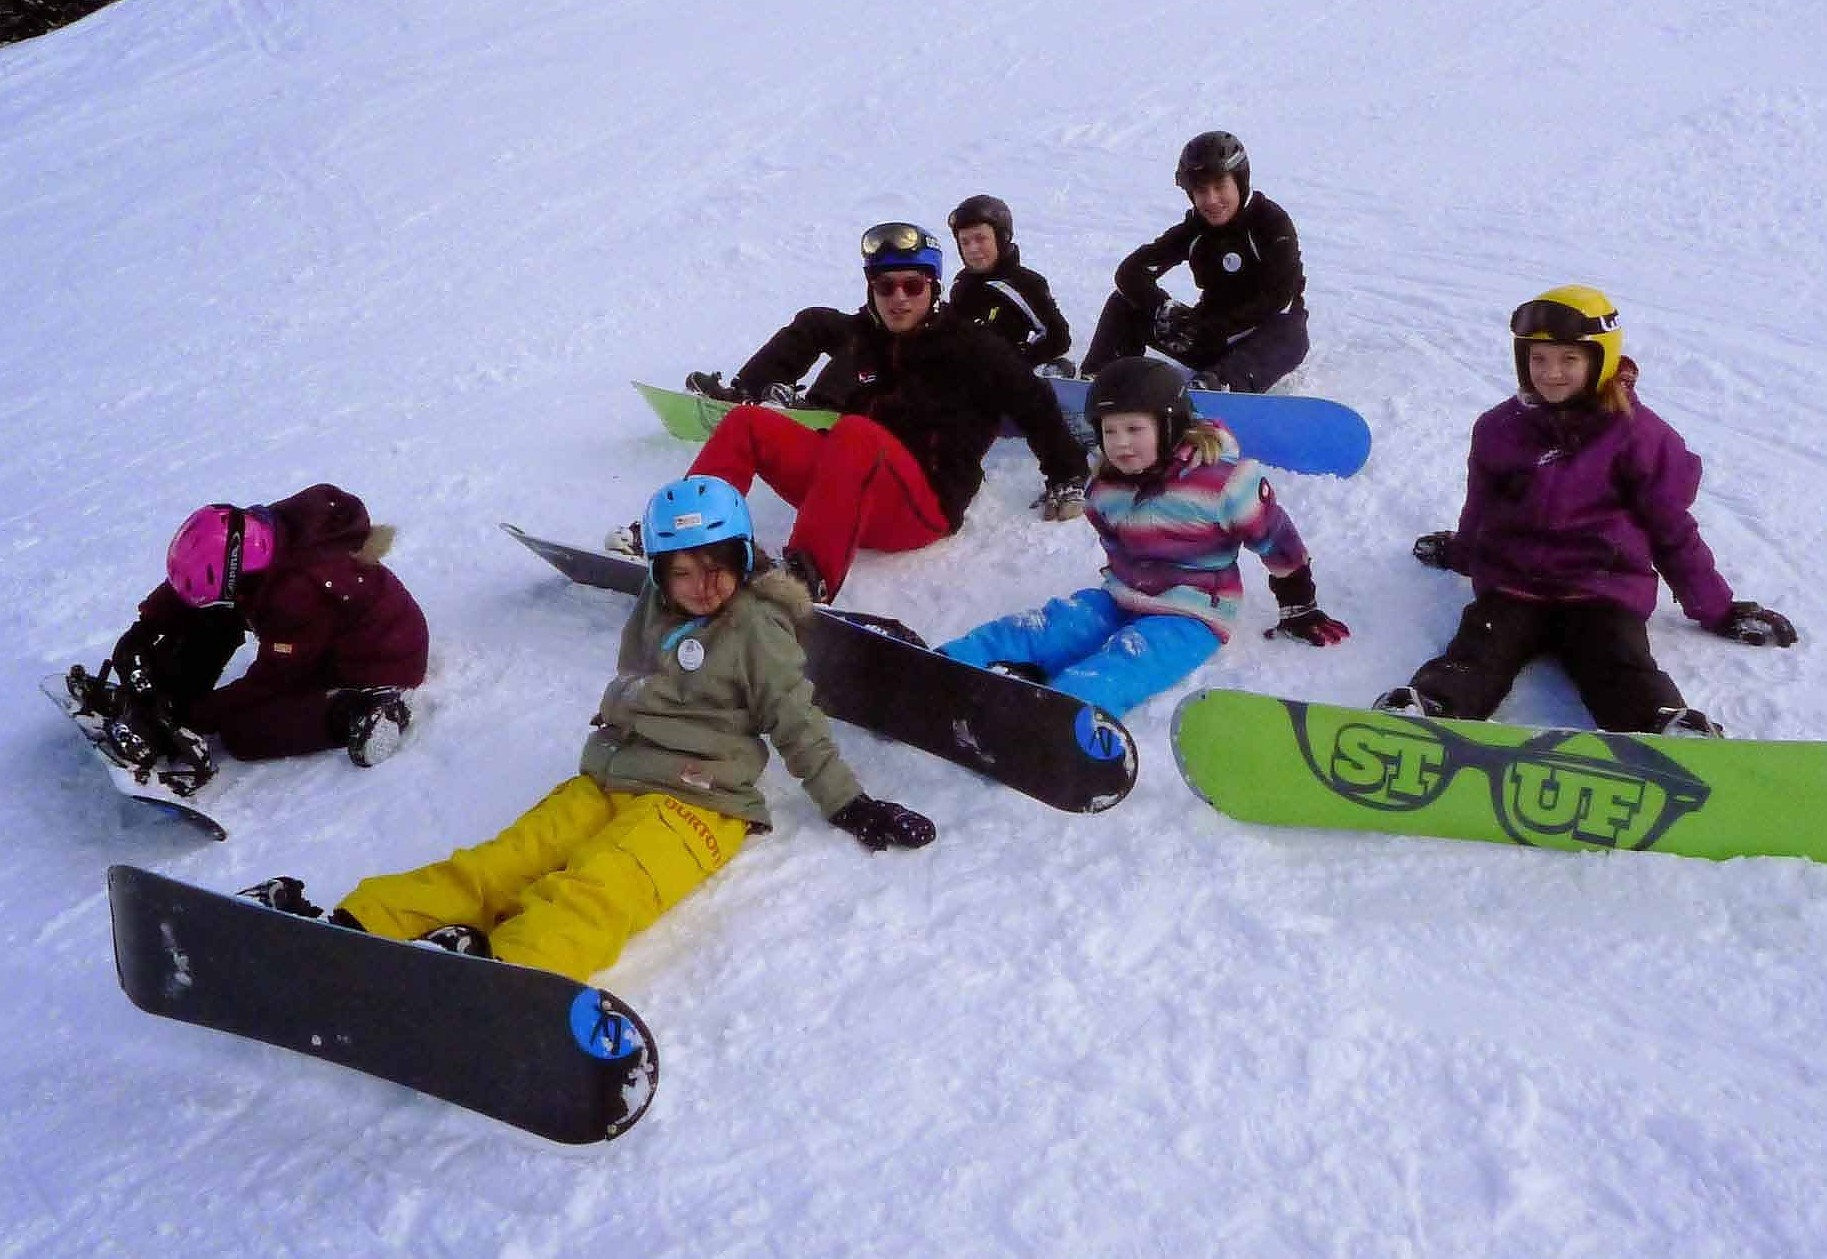 Group BEGINNER Snowboard-lessons 4,5 hours FULLDAY from 9:15-11:15 a.m., 12.15-2.45 p.m.